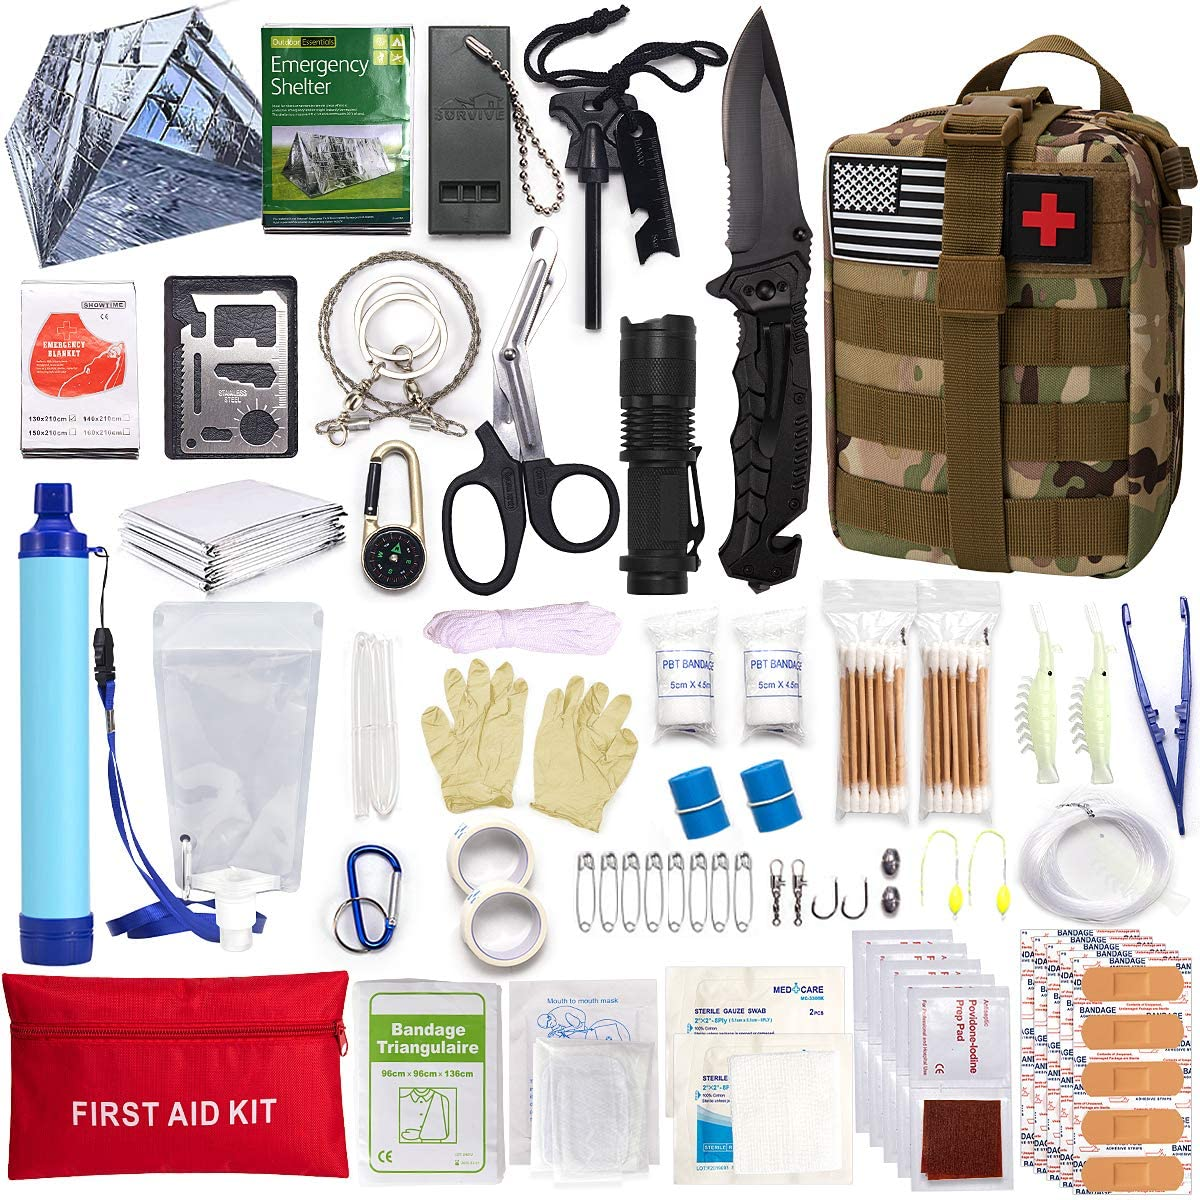 Survival First Aid Kit Molle System Compatible Outdoor Gear Emergency Kits Trauma Bag for Camping Boat Hunting Hiking Home Car Earthquake and Adventures: Health & Personal Care